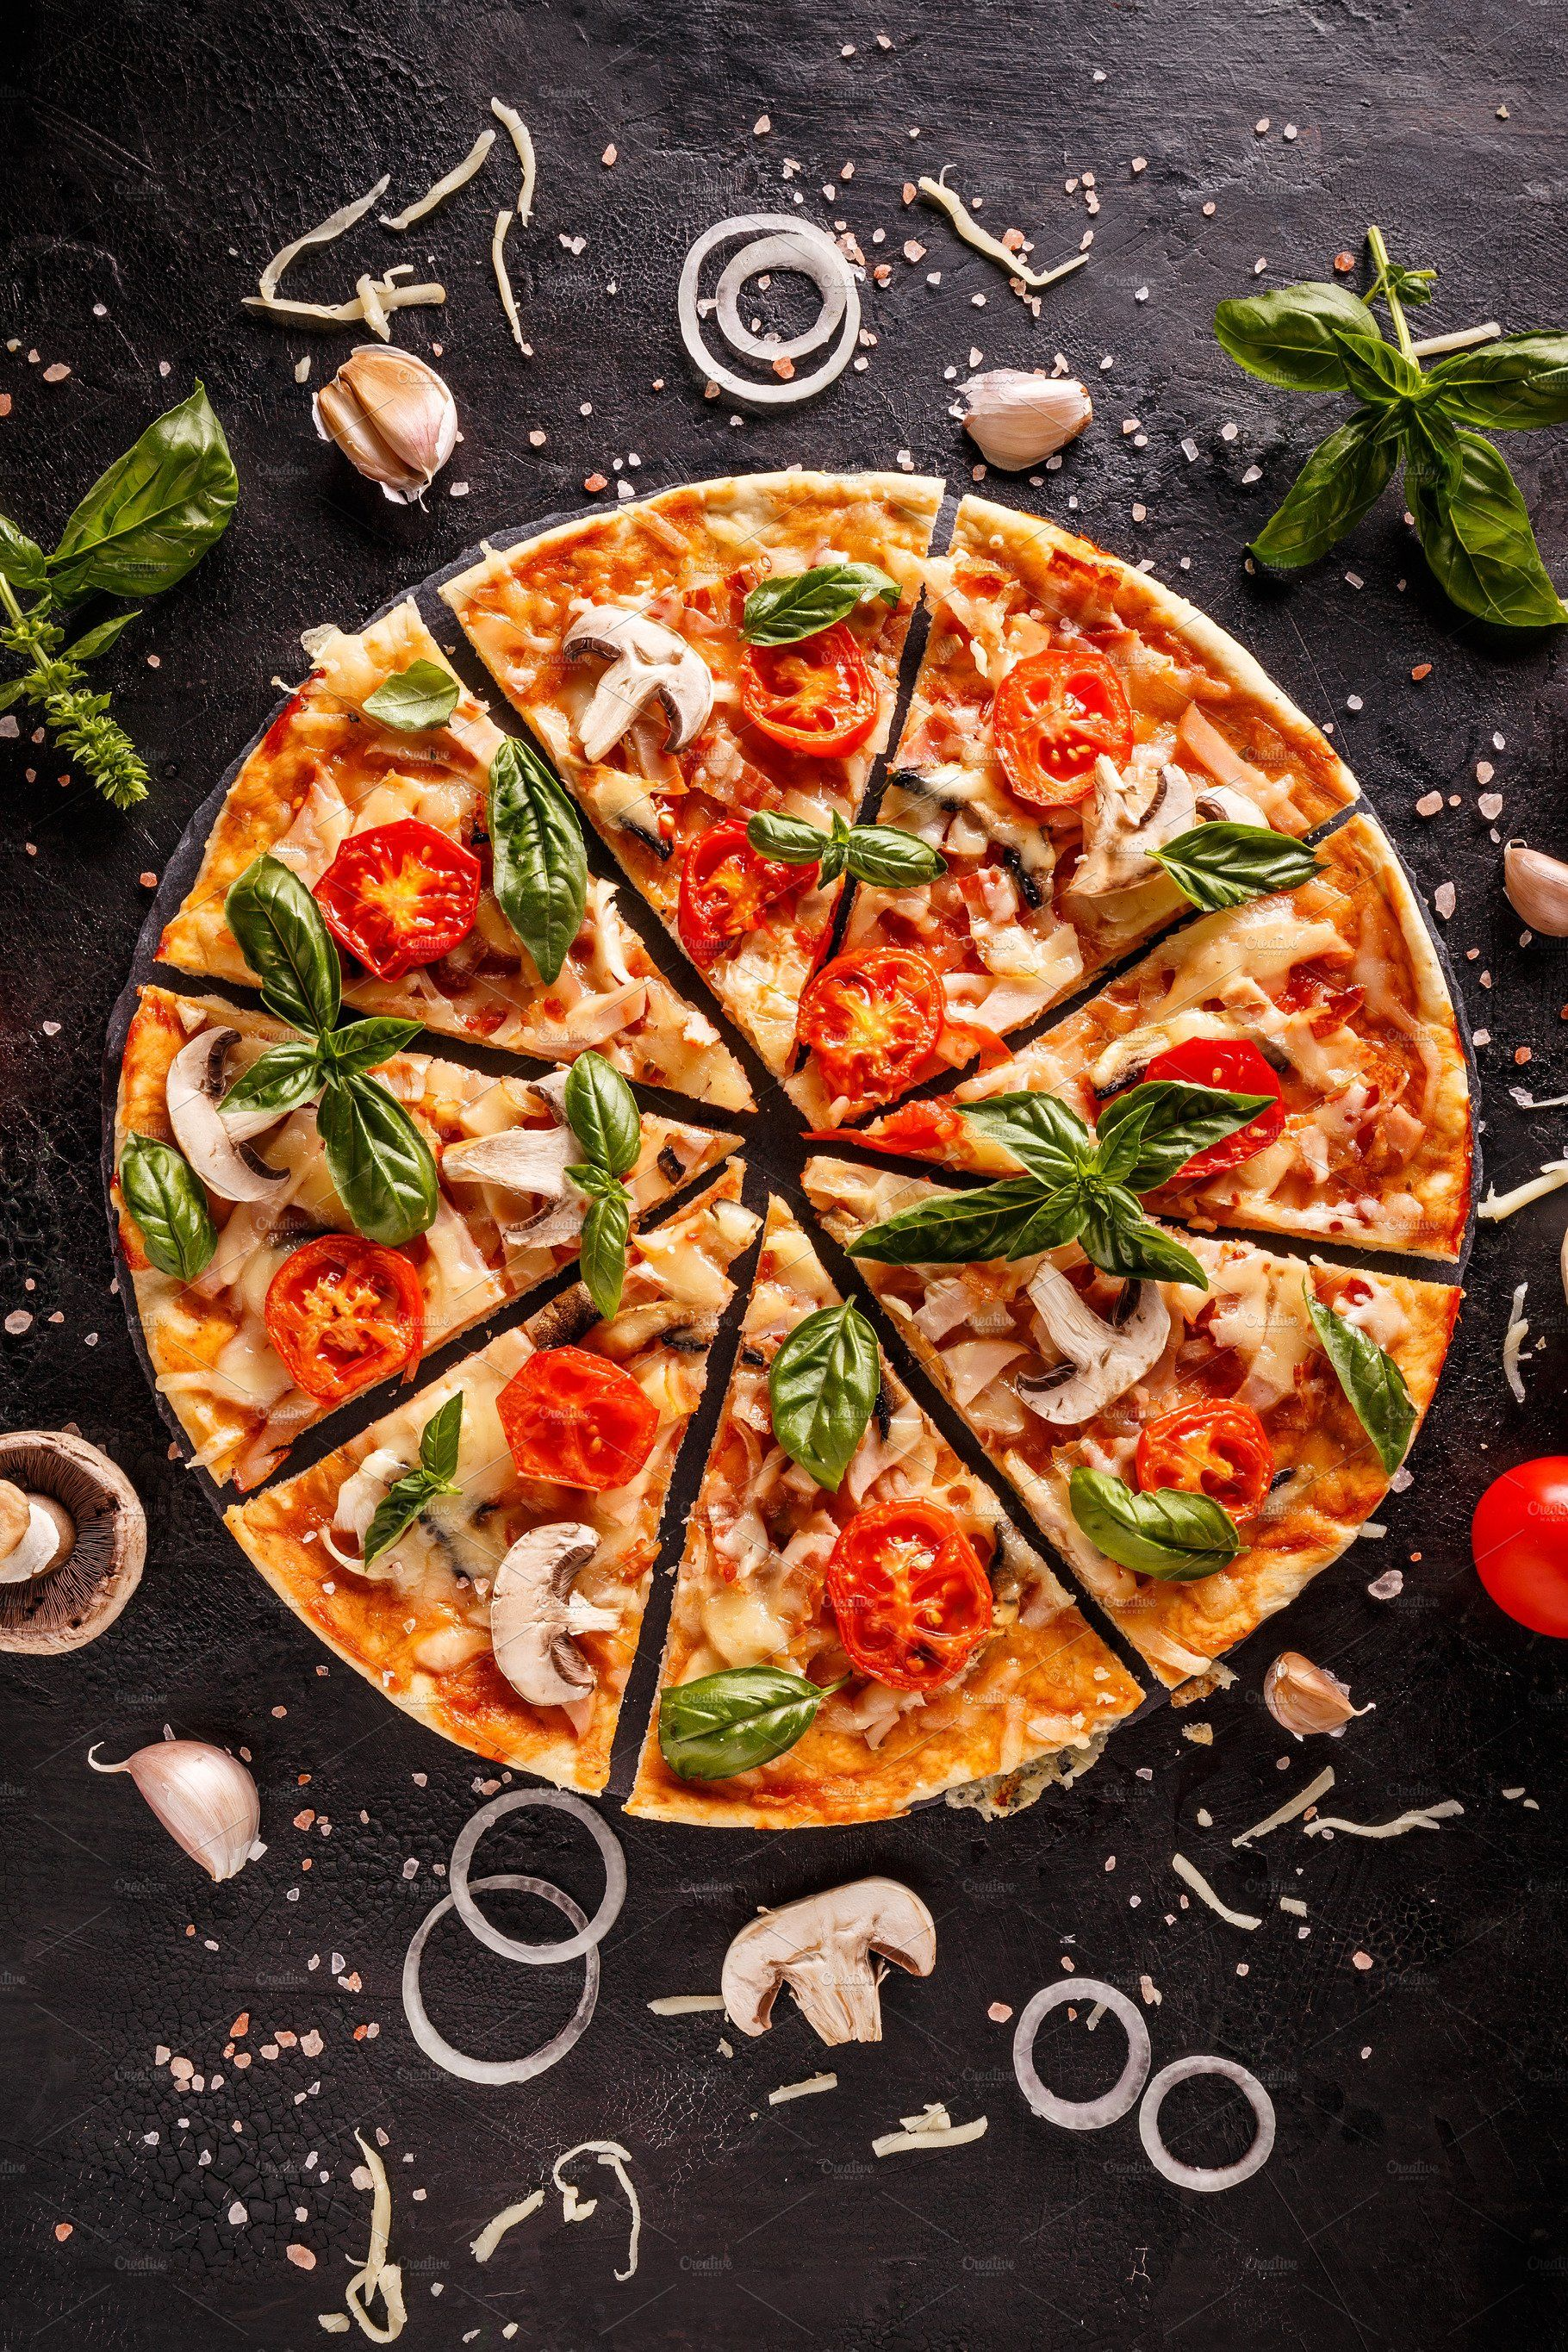 Flat Lay With Italian Pizza Containing Pizza Flat And Lay Italian Food Photography Food Flatlay Photographing Food